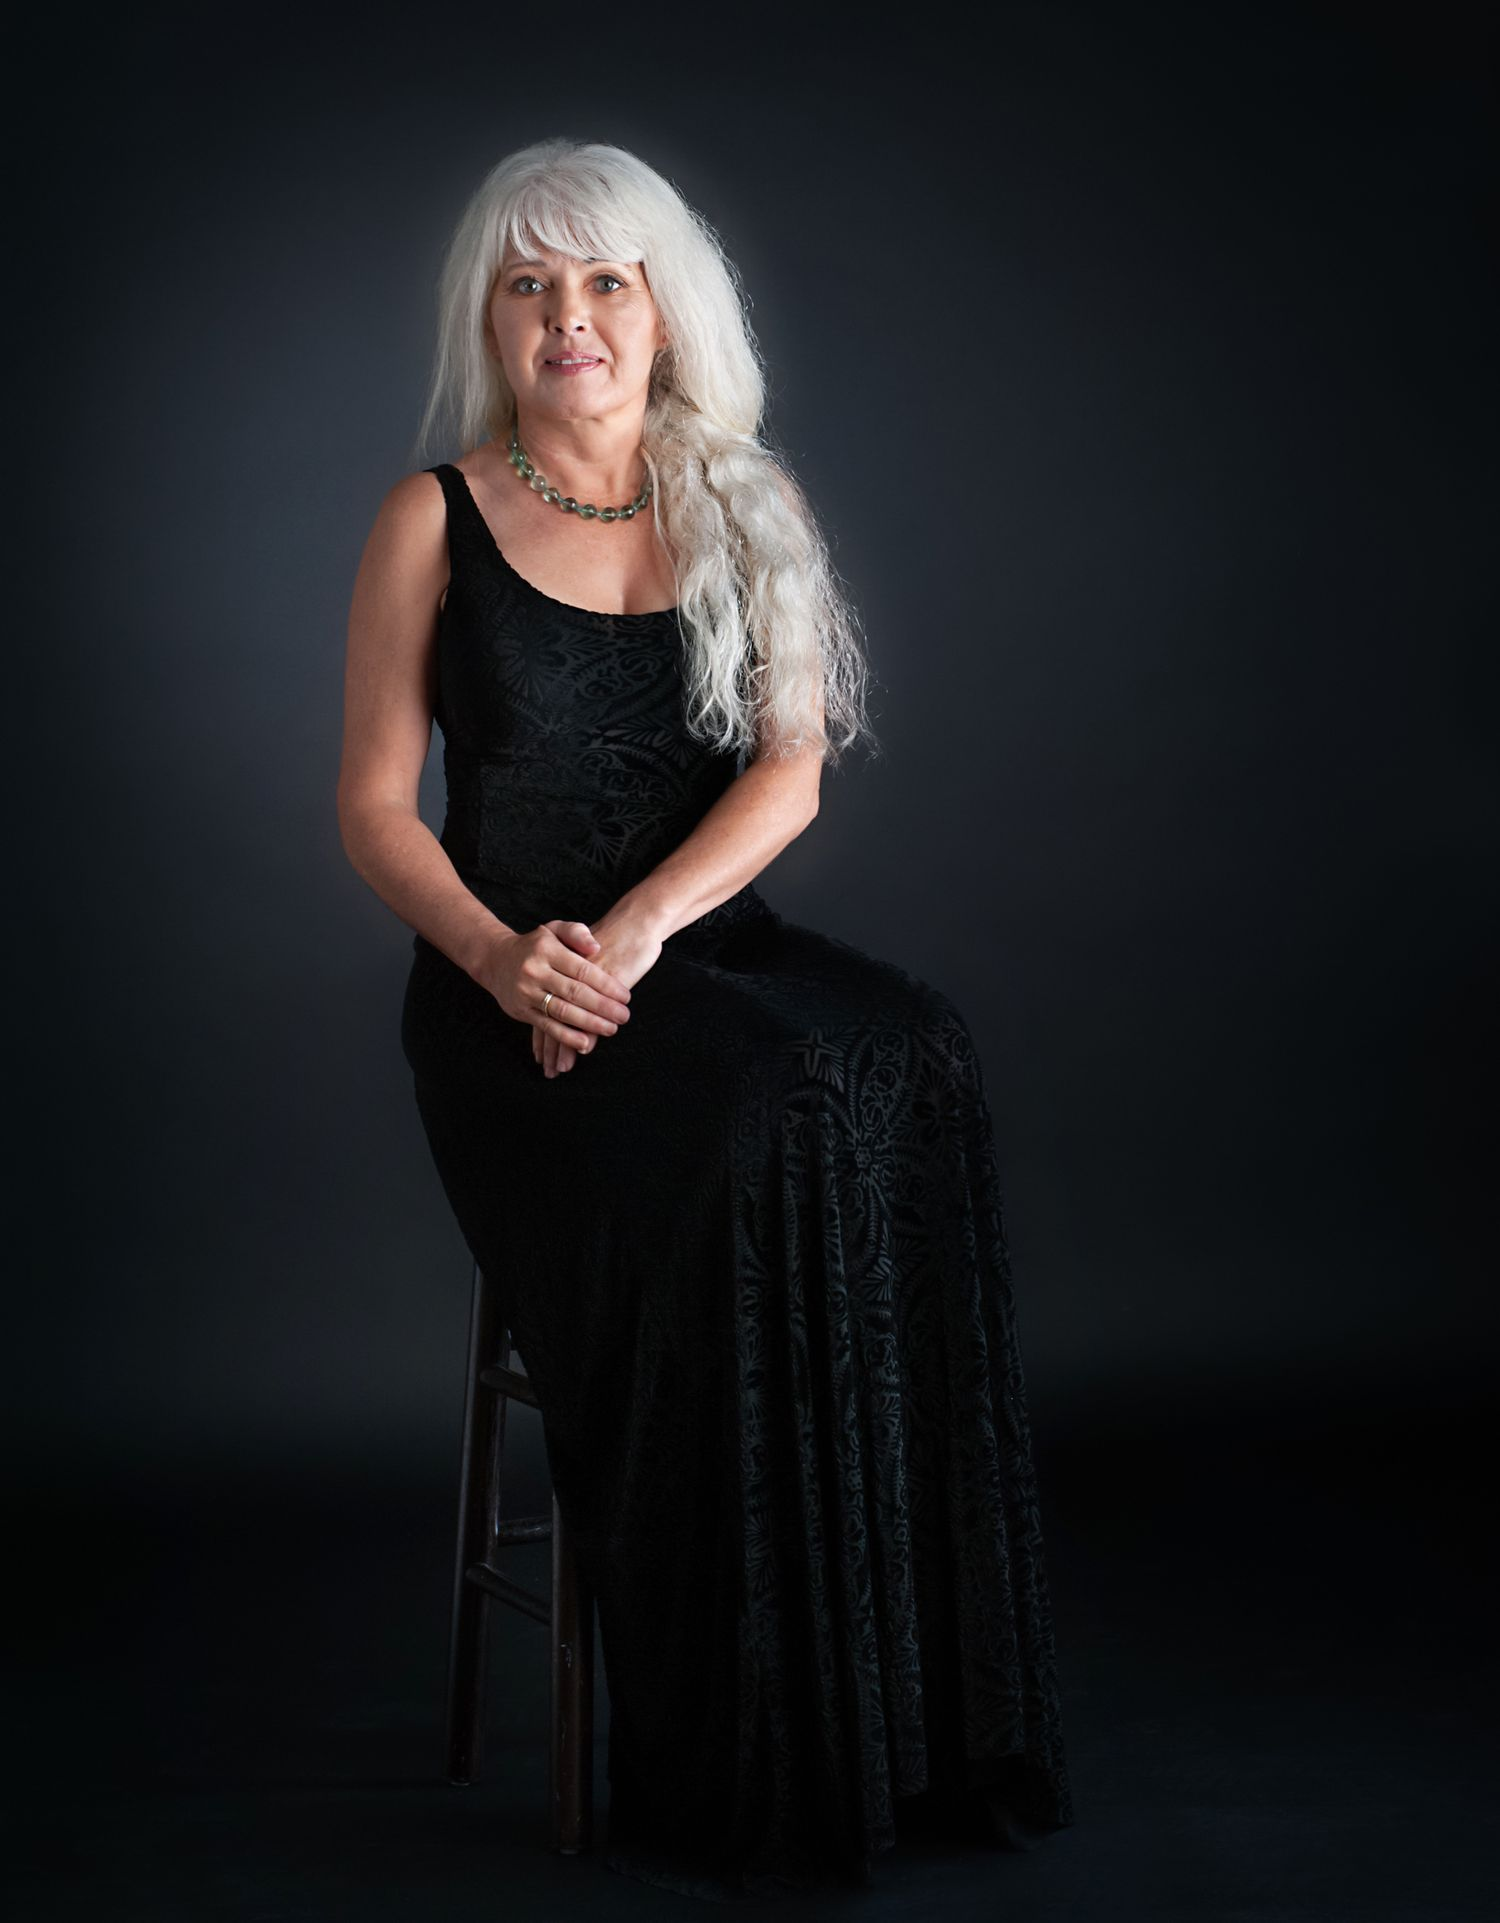 silver haired beauty sits for portrait